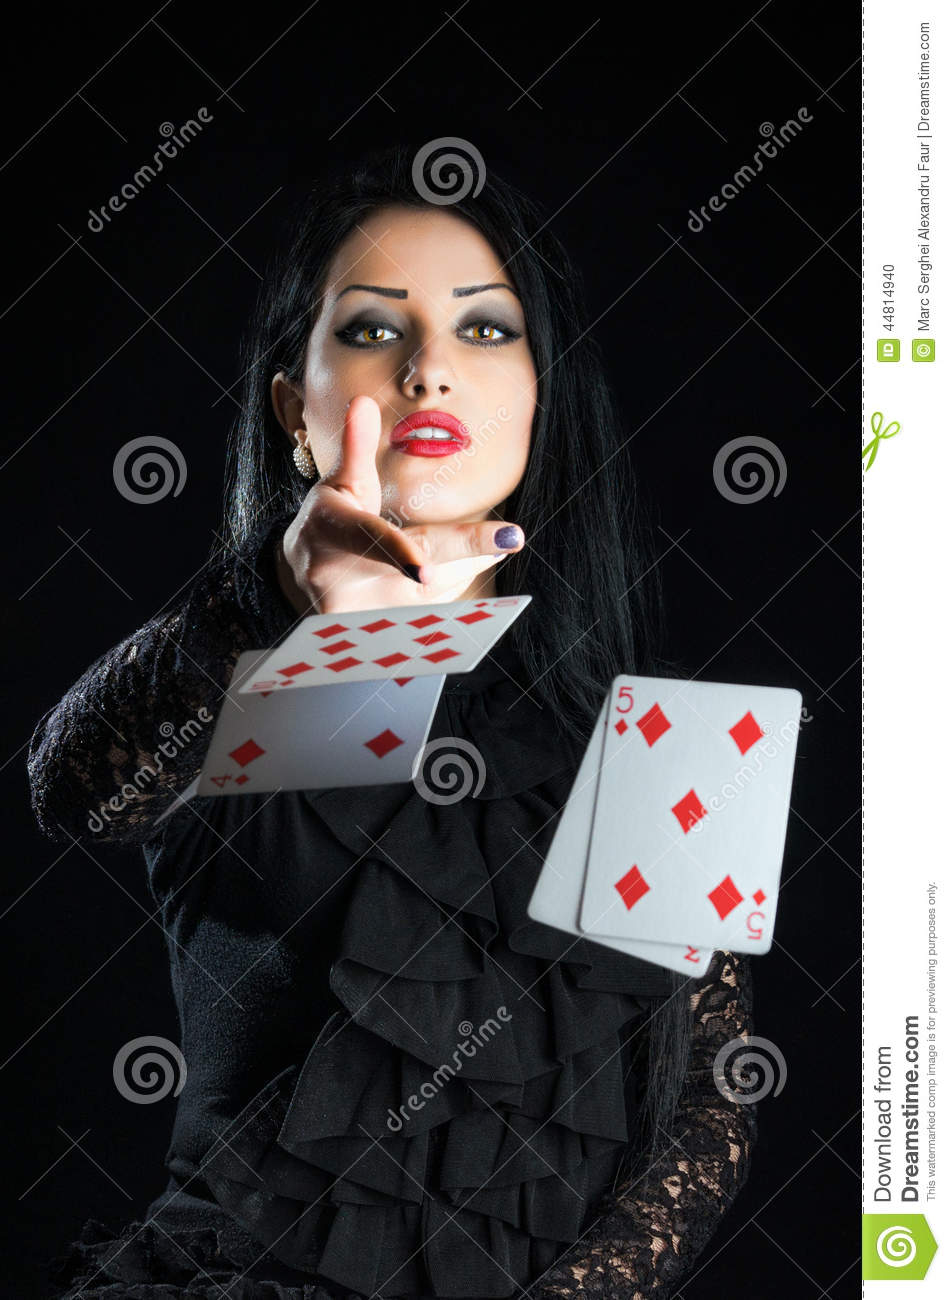 Girl With Playing Cards stock photo. Image of gambler